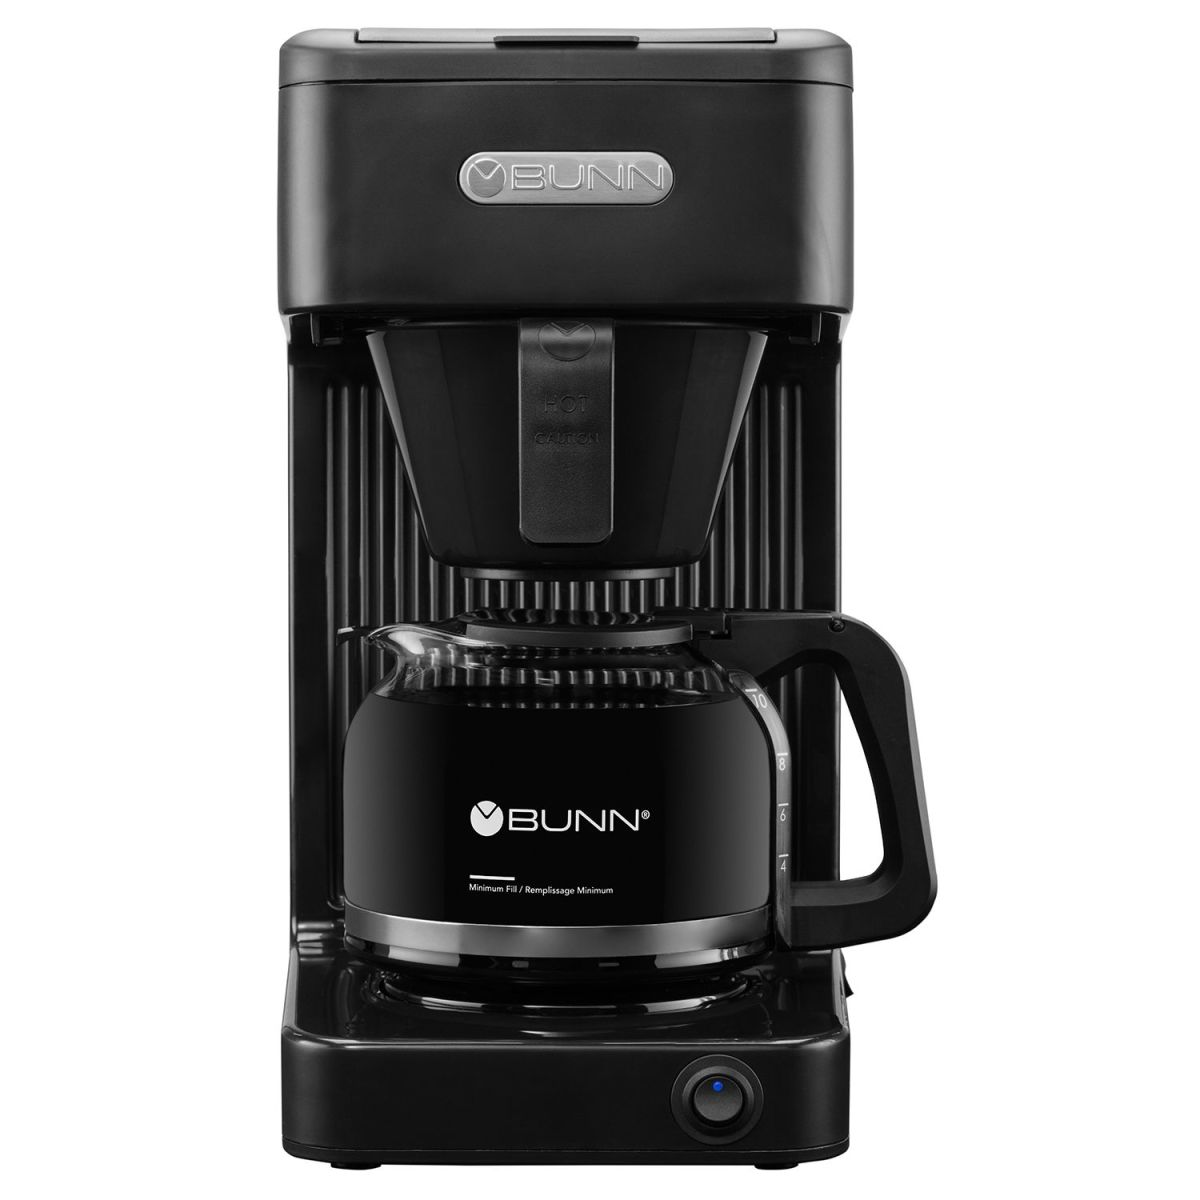 CSB1 Speed Brew Select Coffee Maker